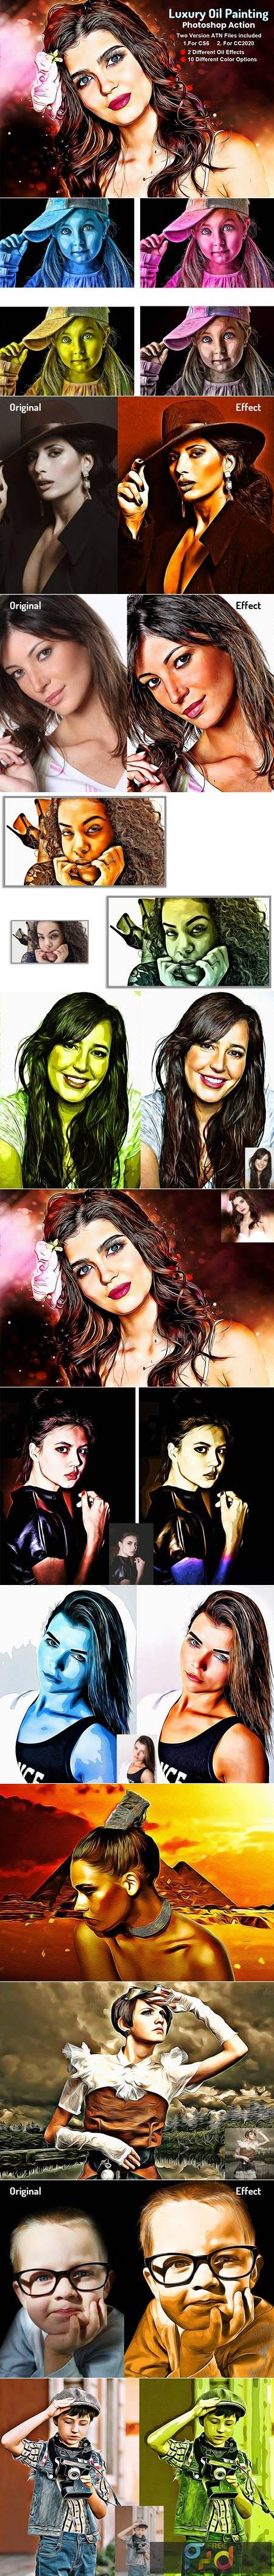 Luxury Oil Painting Photoshop Action 5704092 1